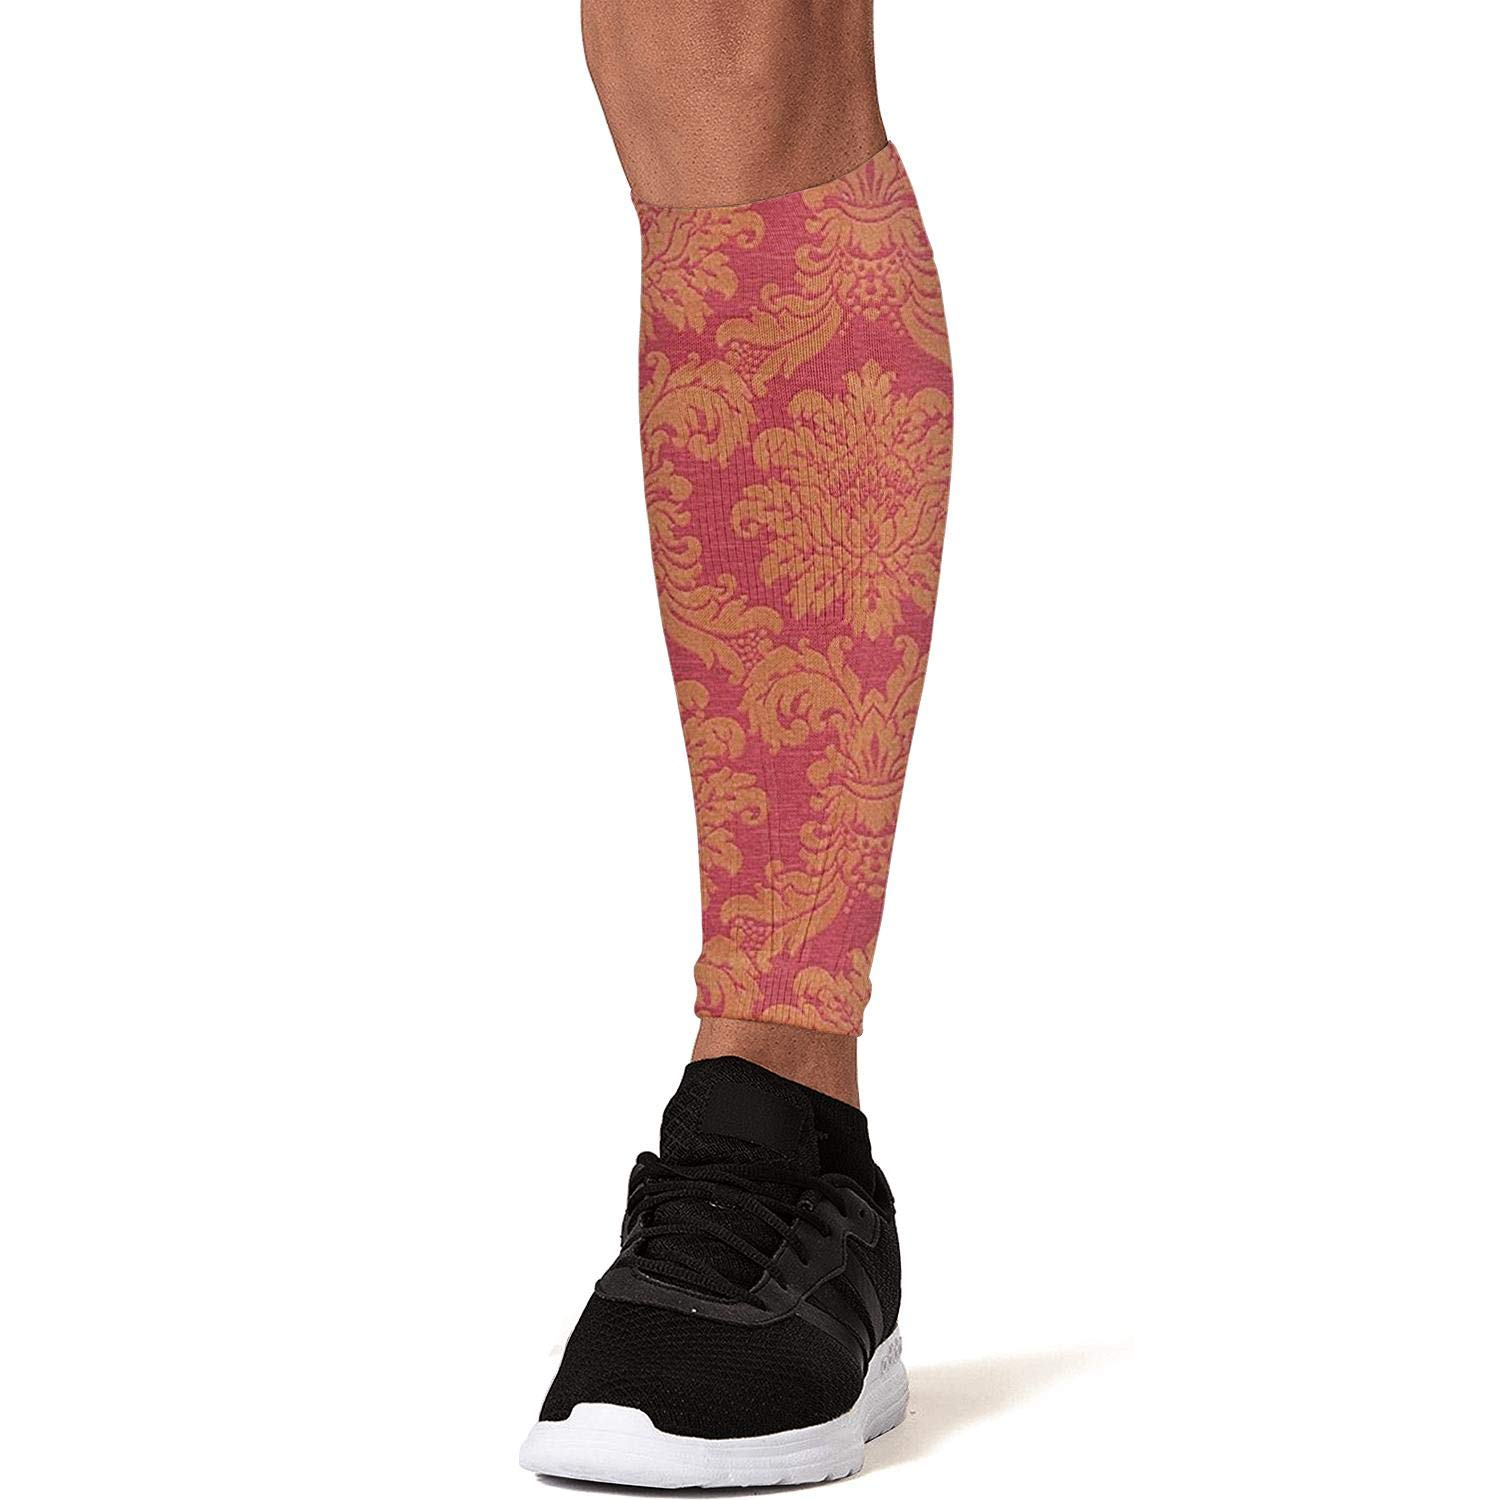 Smilelolly Aztec American Indian Style Calf Compression Sleeves Helps Calf Guard Leg Sleeves for Men Women